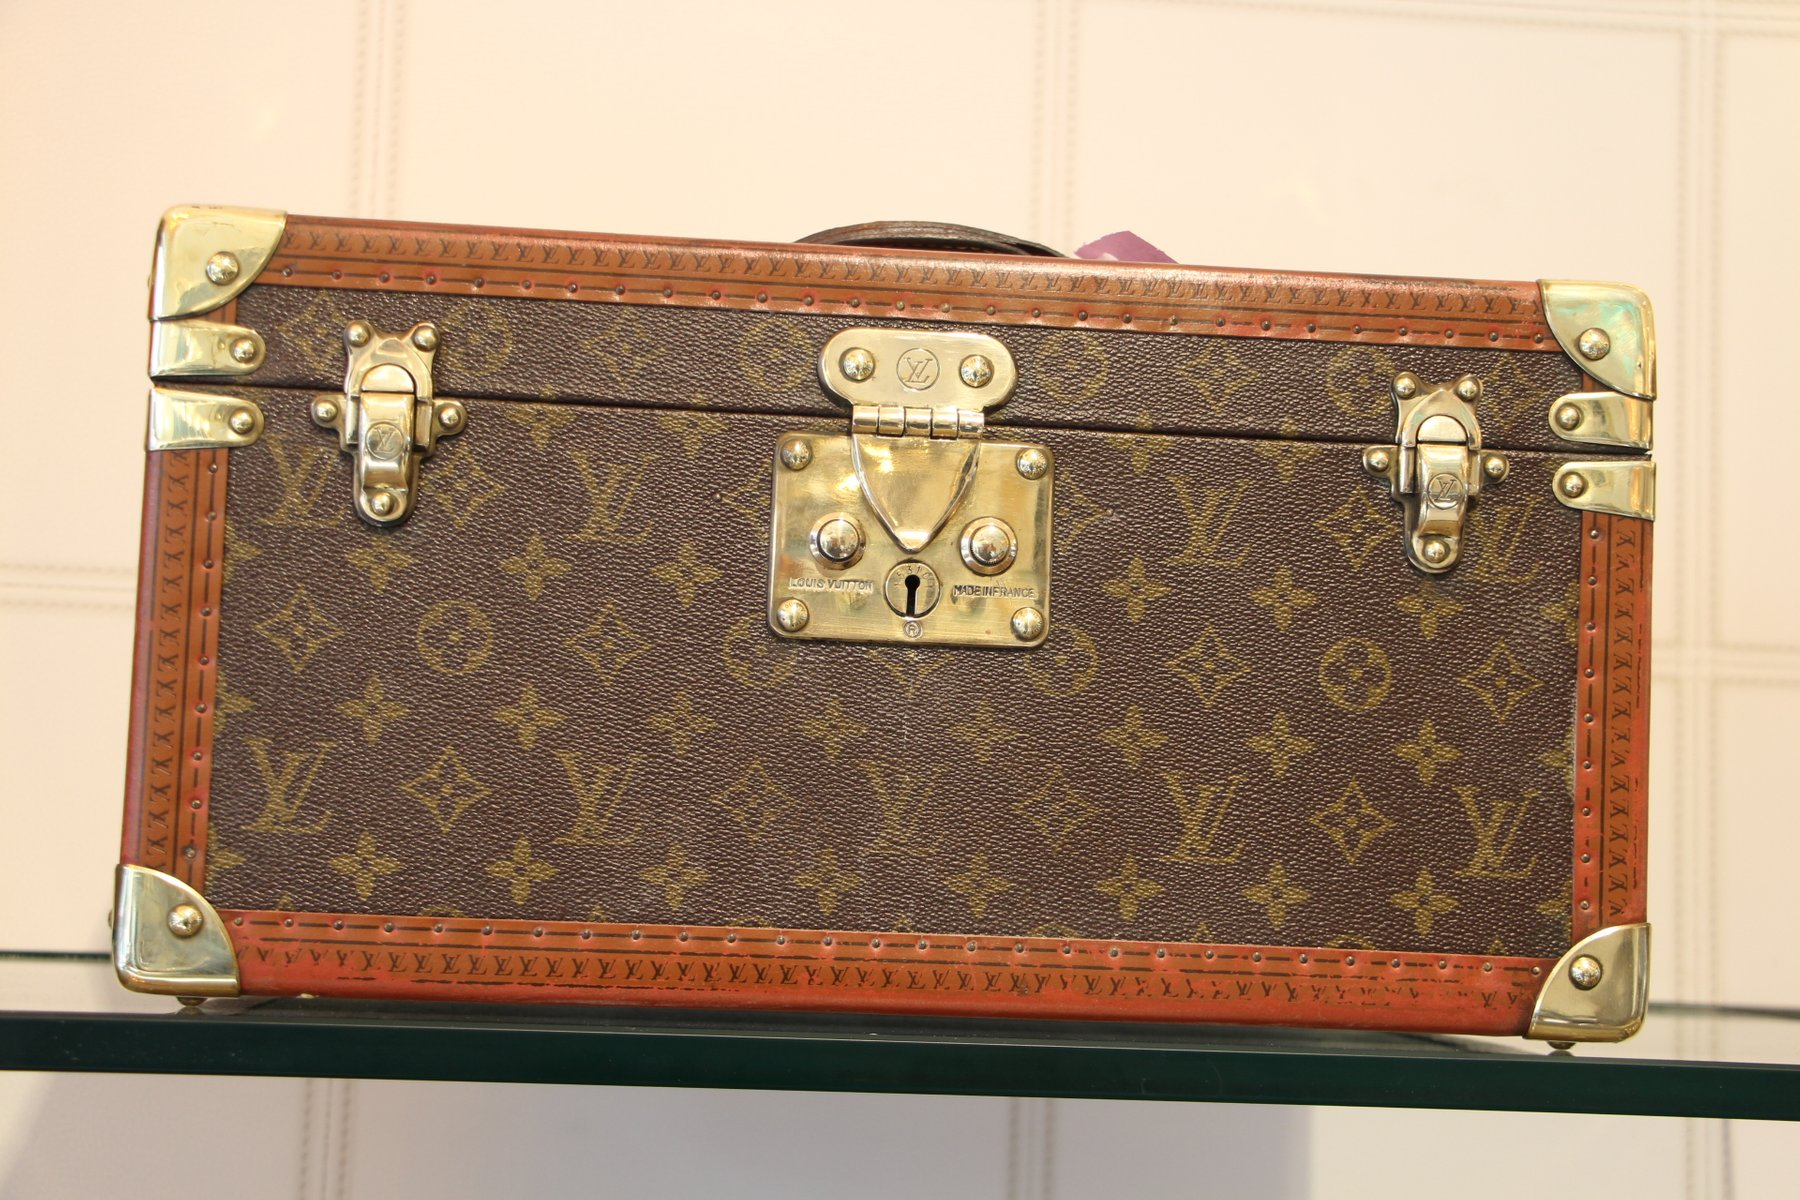 Vintage Vanity Case from Louis Vuitton 2b8cf1629a8